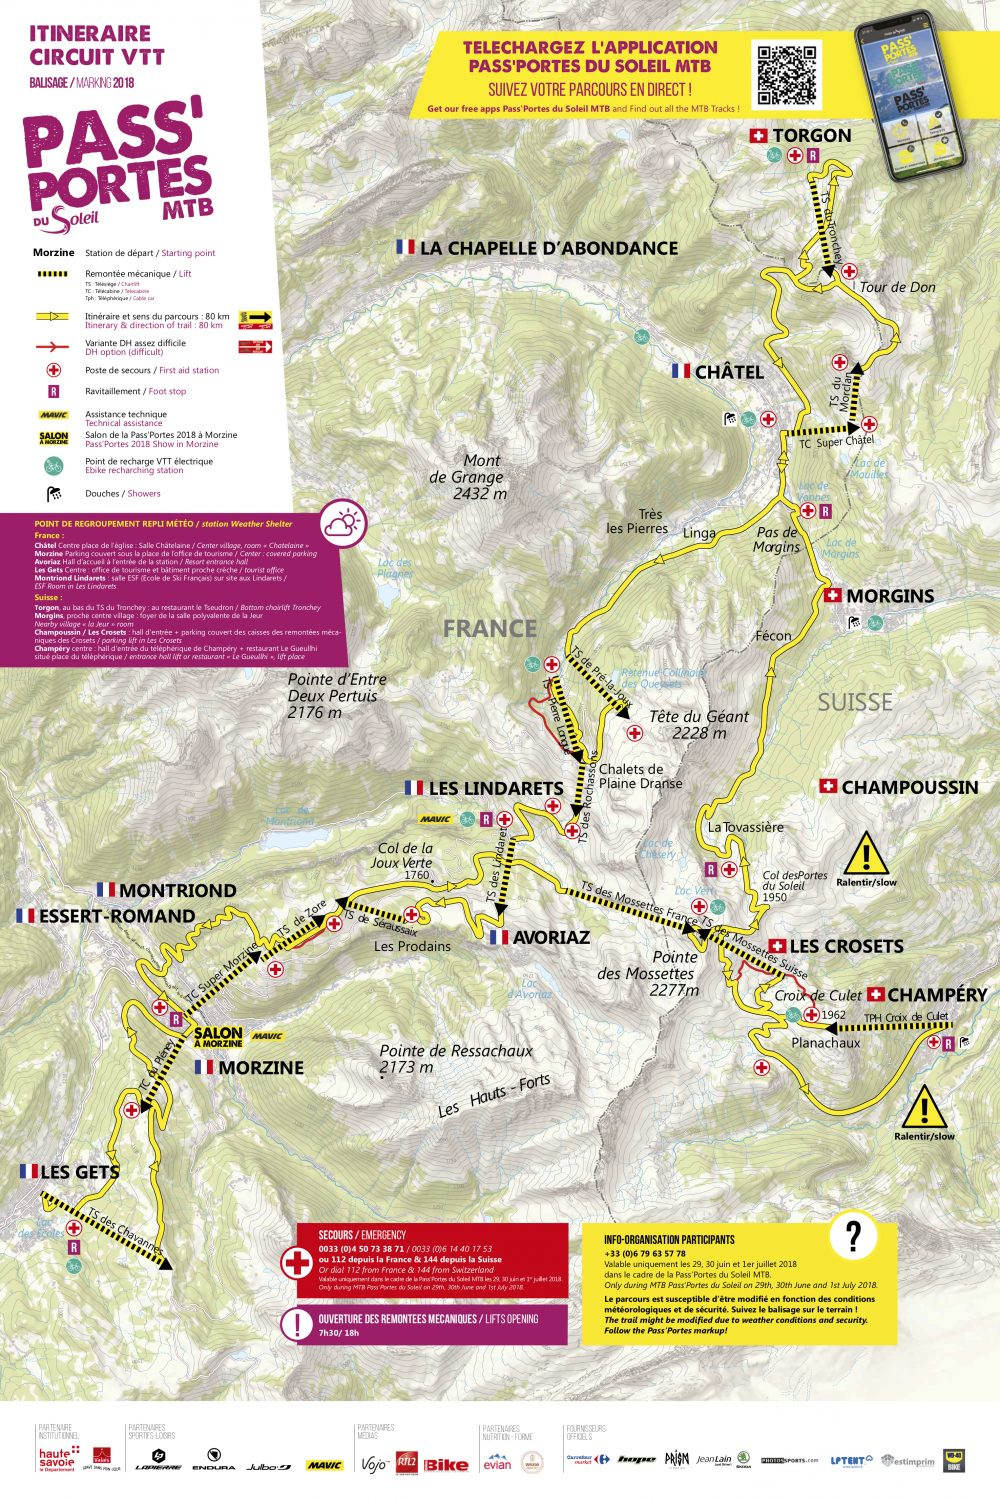 PassPortes du Soleil 2018 route map. Image source: http://en.passportesdusoleil.com